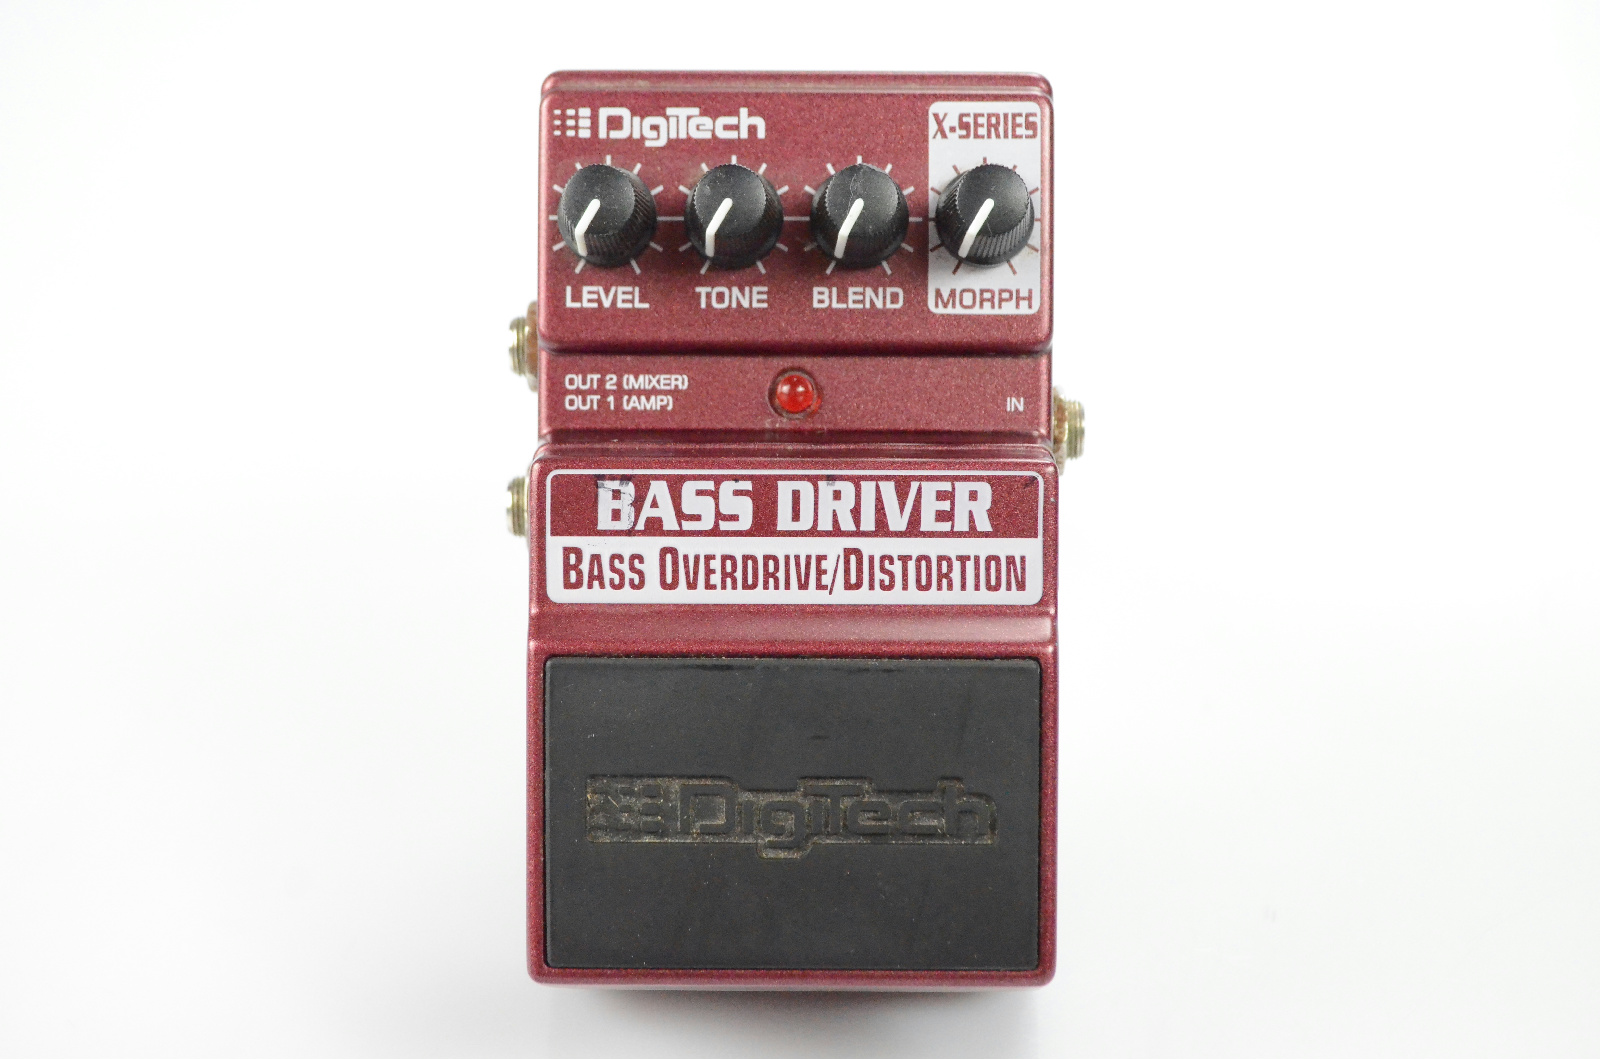 Digitech Bass Driver Overdrive OD Distortion Pedal Owned By Papa Roach #33372